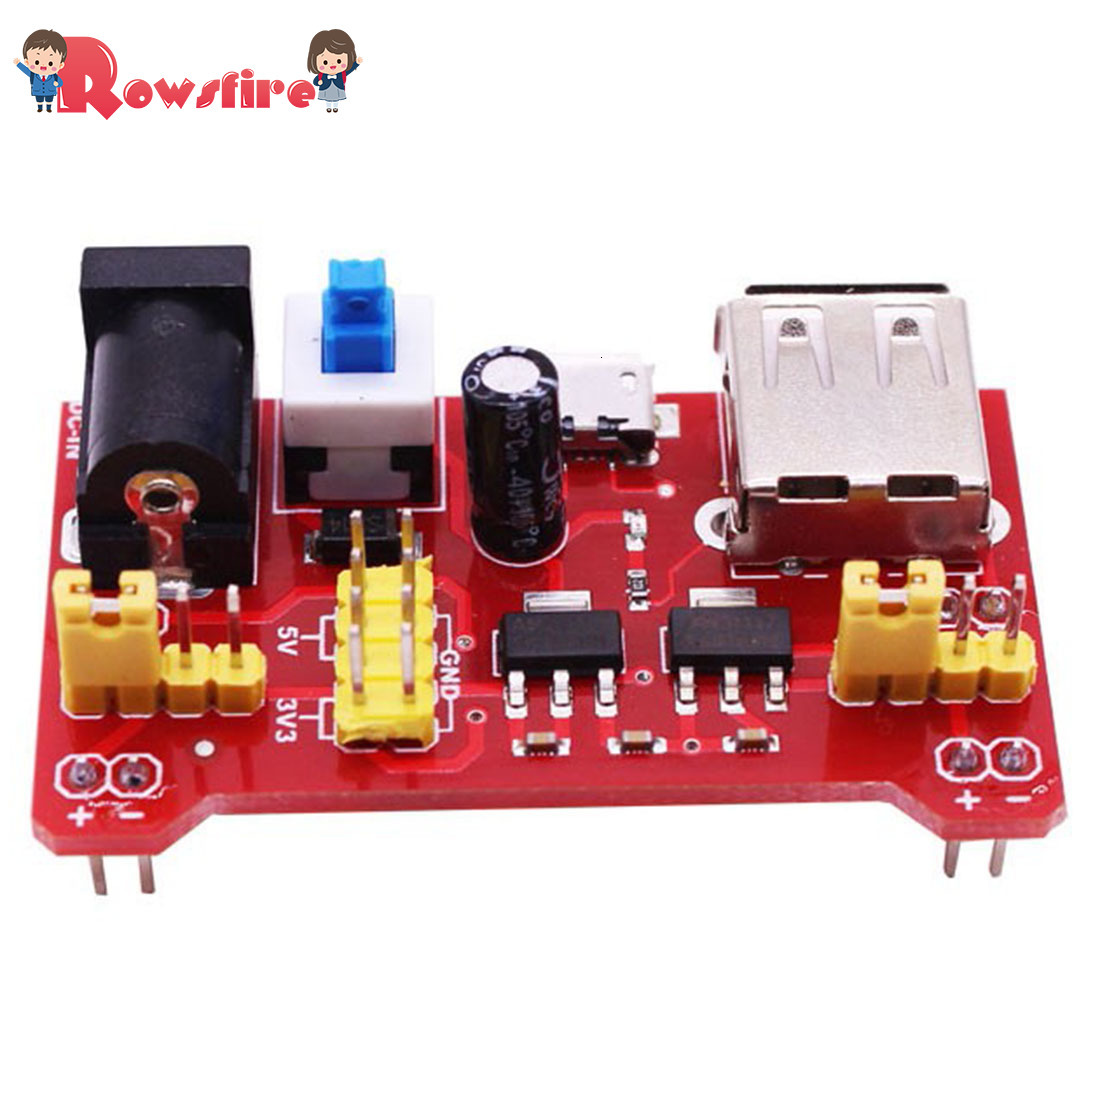 High Quality 5V Power Supply Module Breadboard Compatible With 5V 3.3V Micro:Bit Development Board